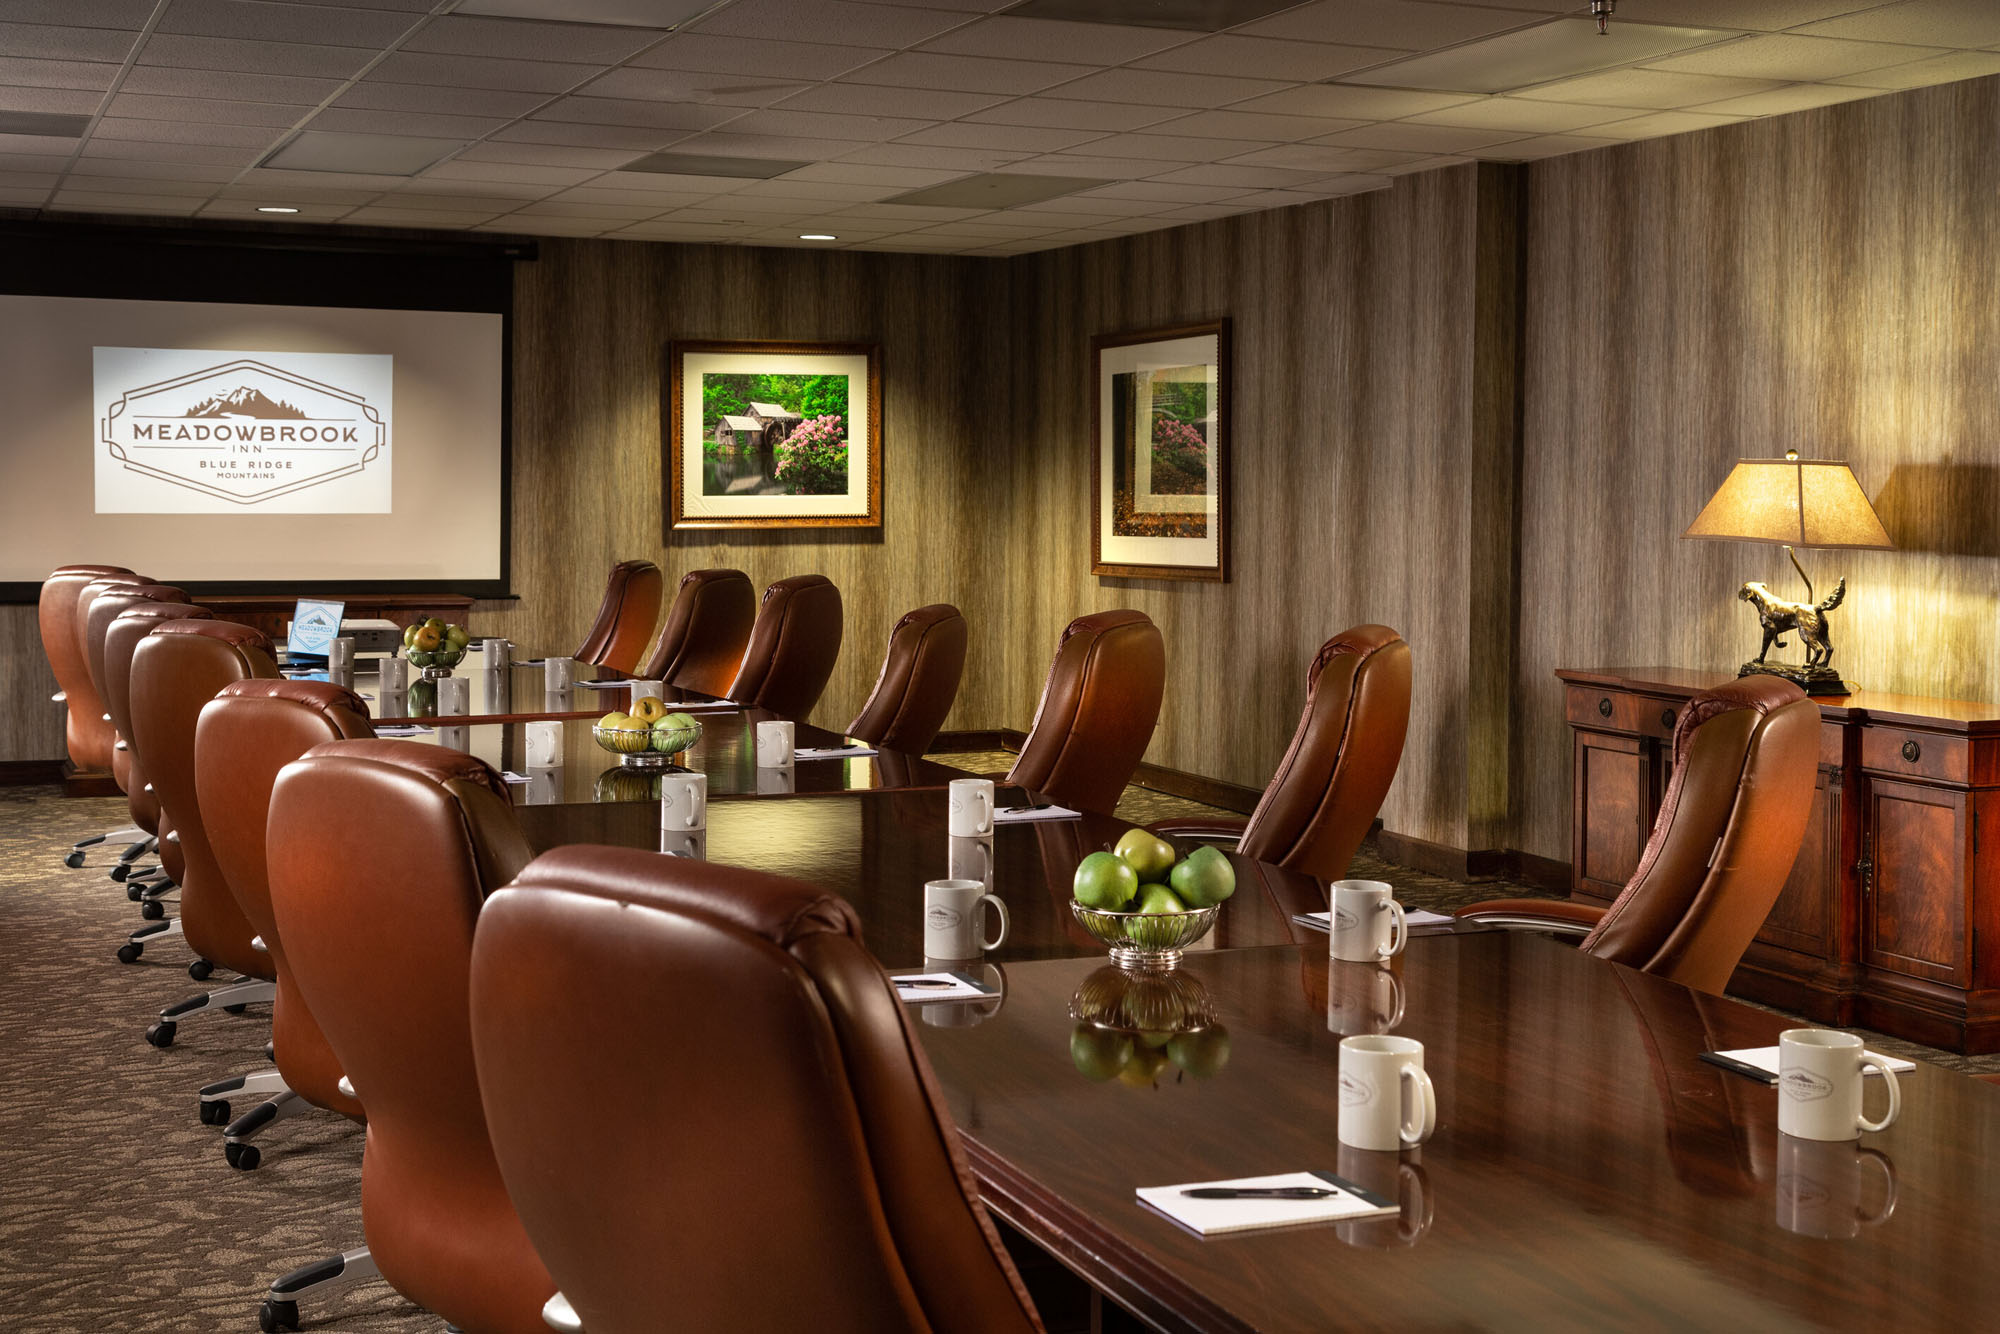 conference room at Meadowbrook Inn